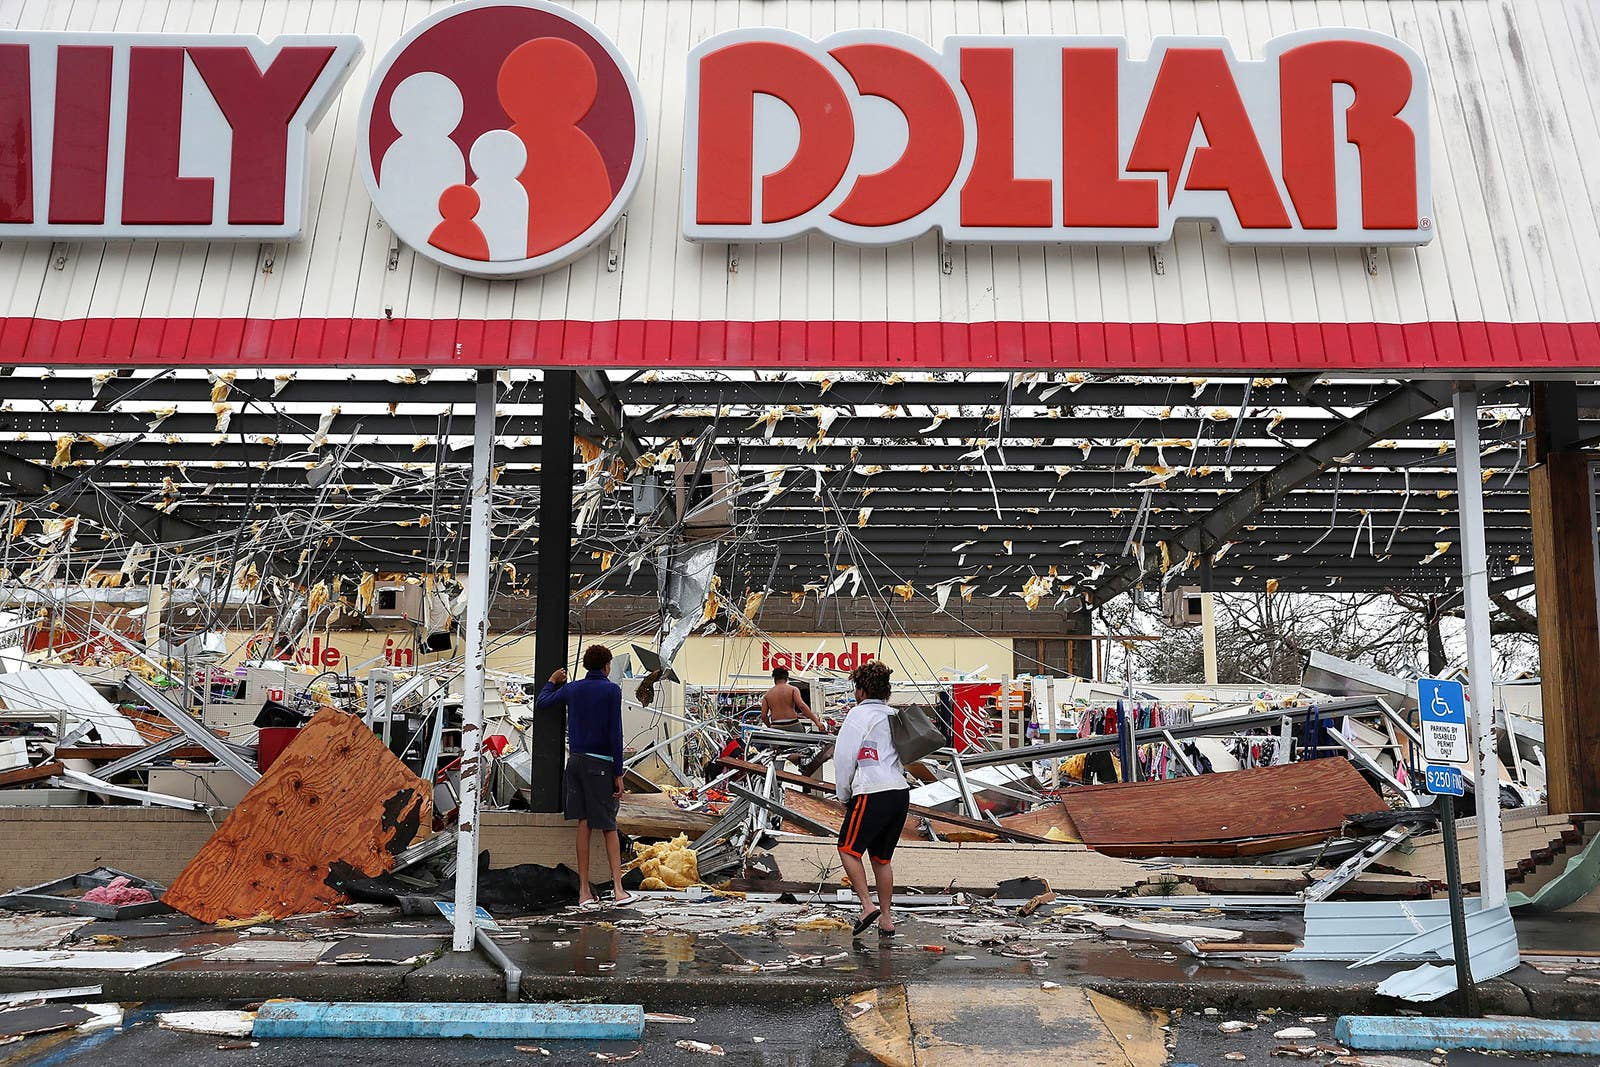 People look on at a damaged store after Hurricane Michael passed through Panama City, Florida.